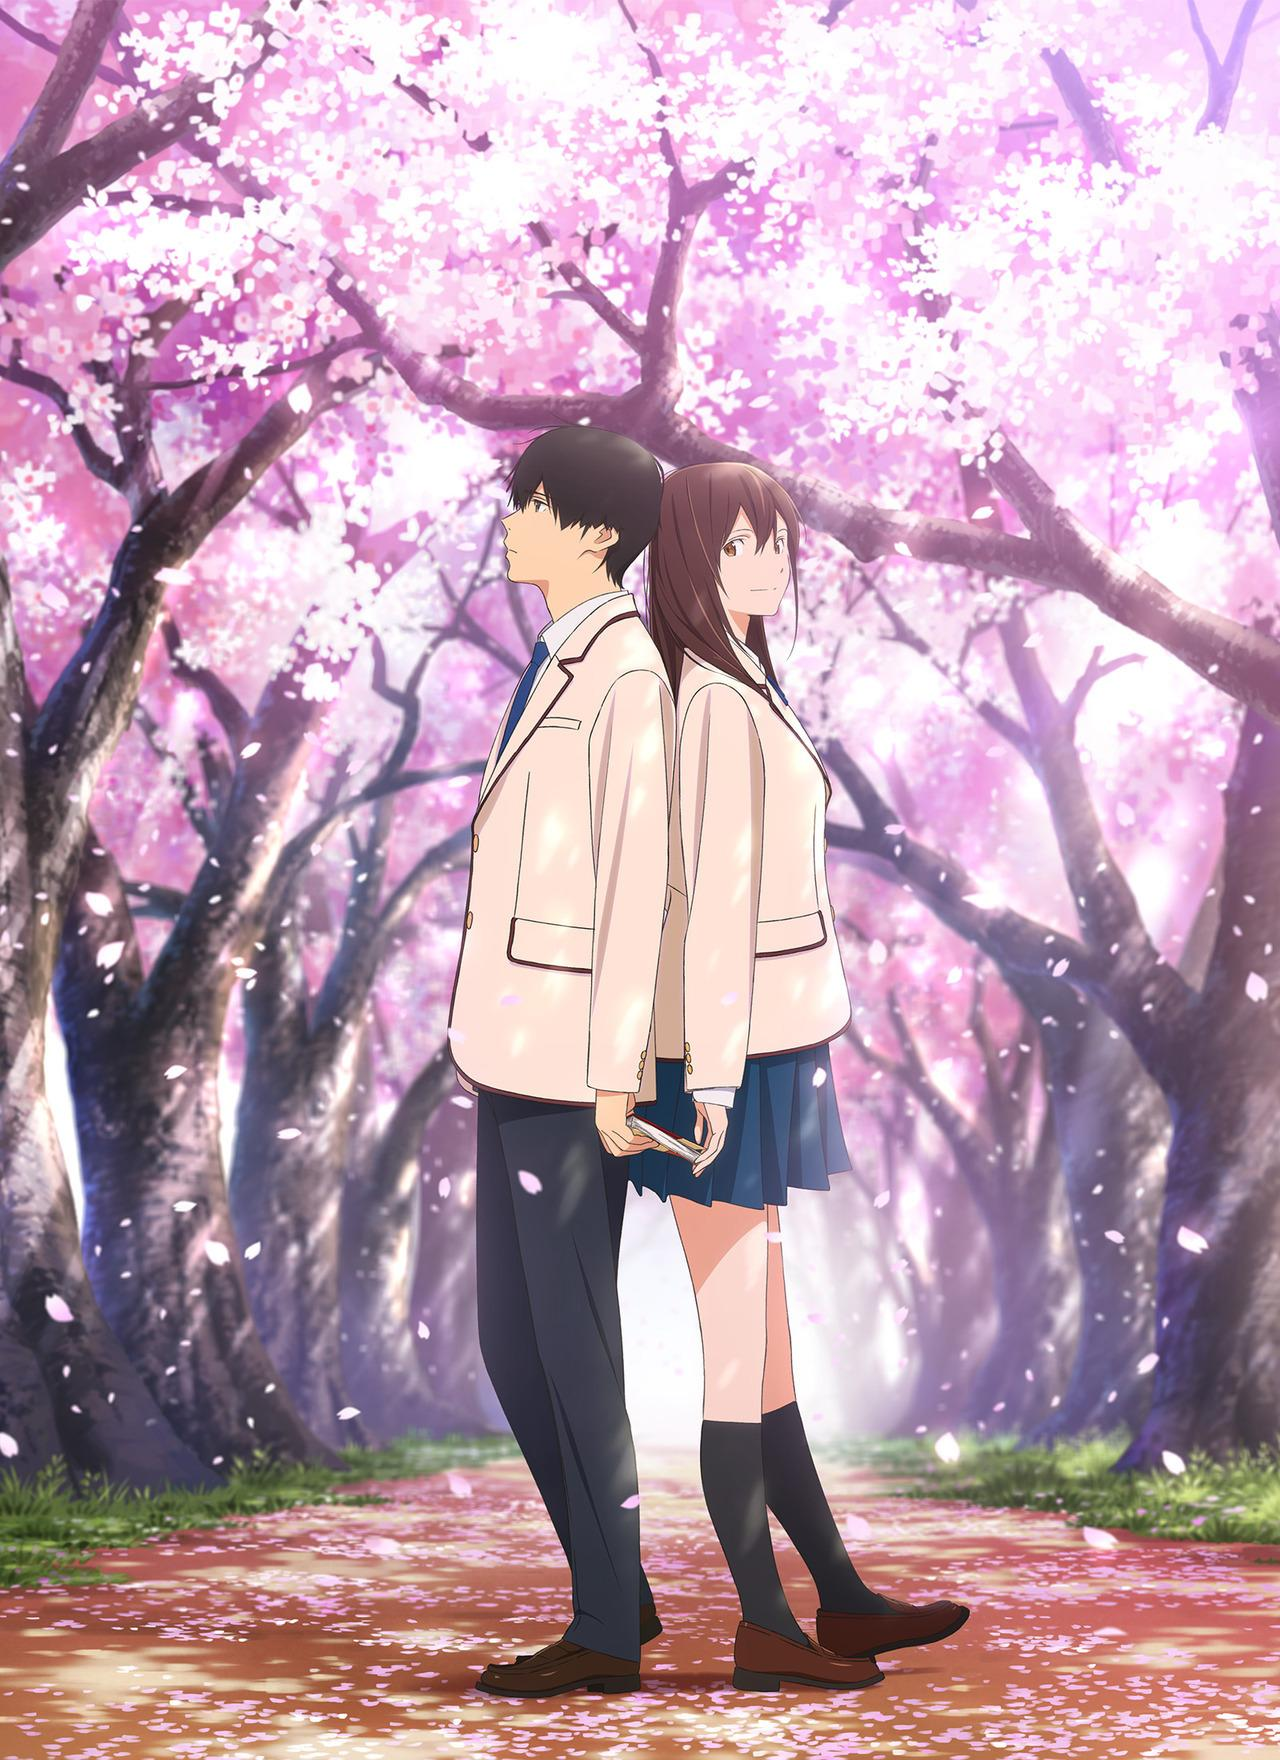 Find and save images from the i want to eat your pancreas collection by misato (paloma_tiss) on we heart it, your everyday app to get lost in what you. I Want To Eat Your Pancreas Wallpapers - Wallpaper Cave